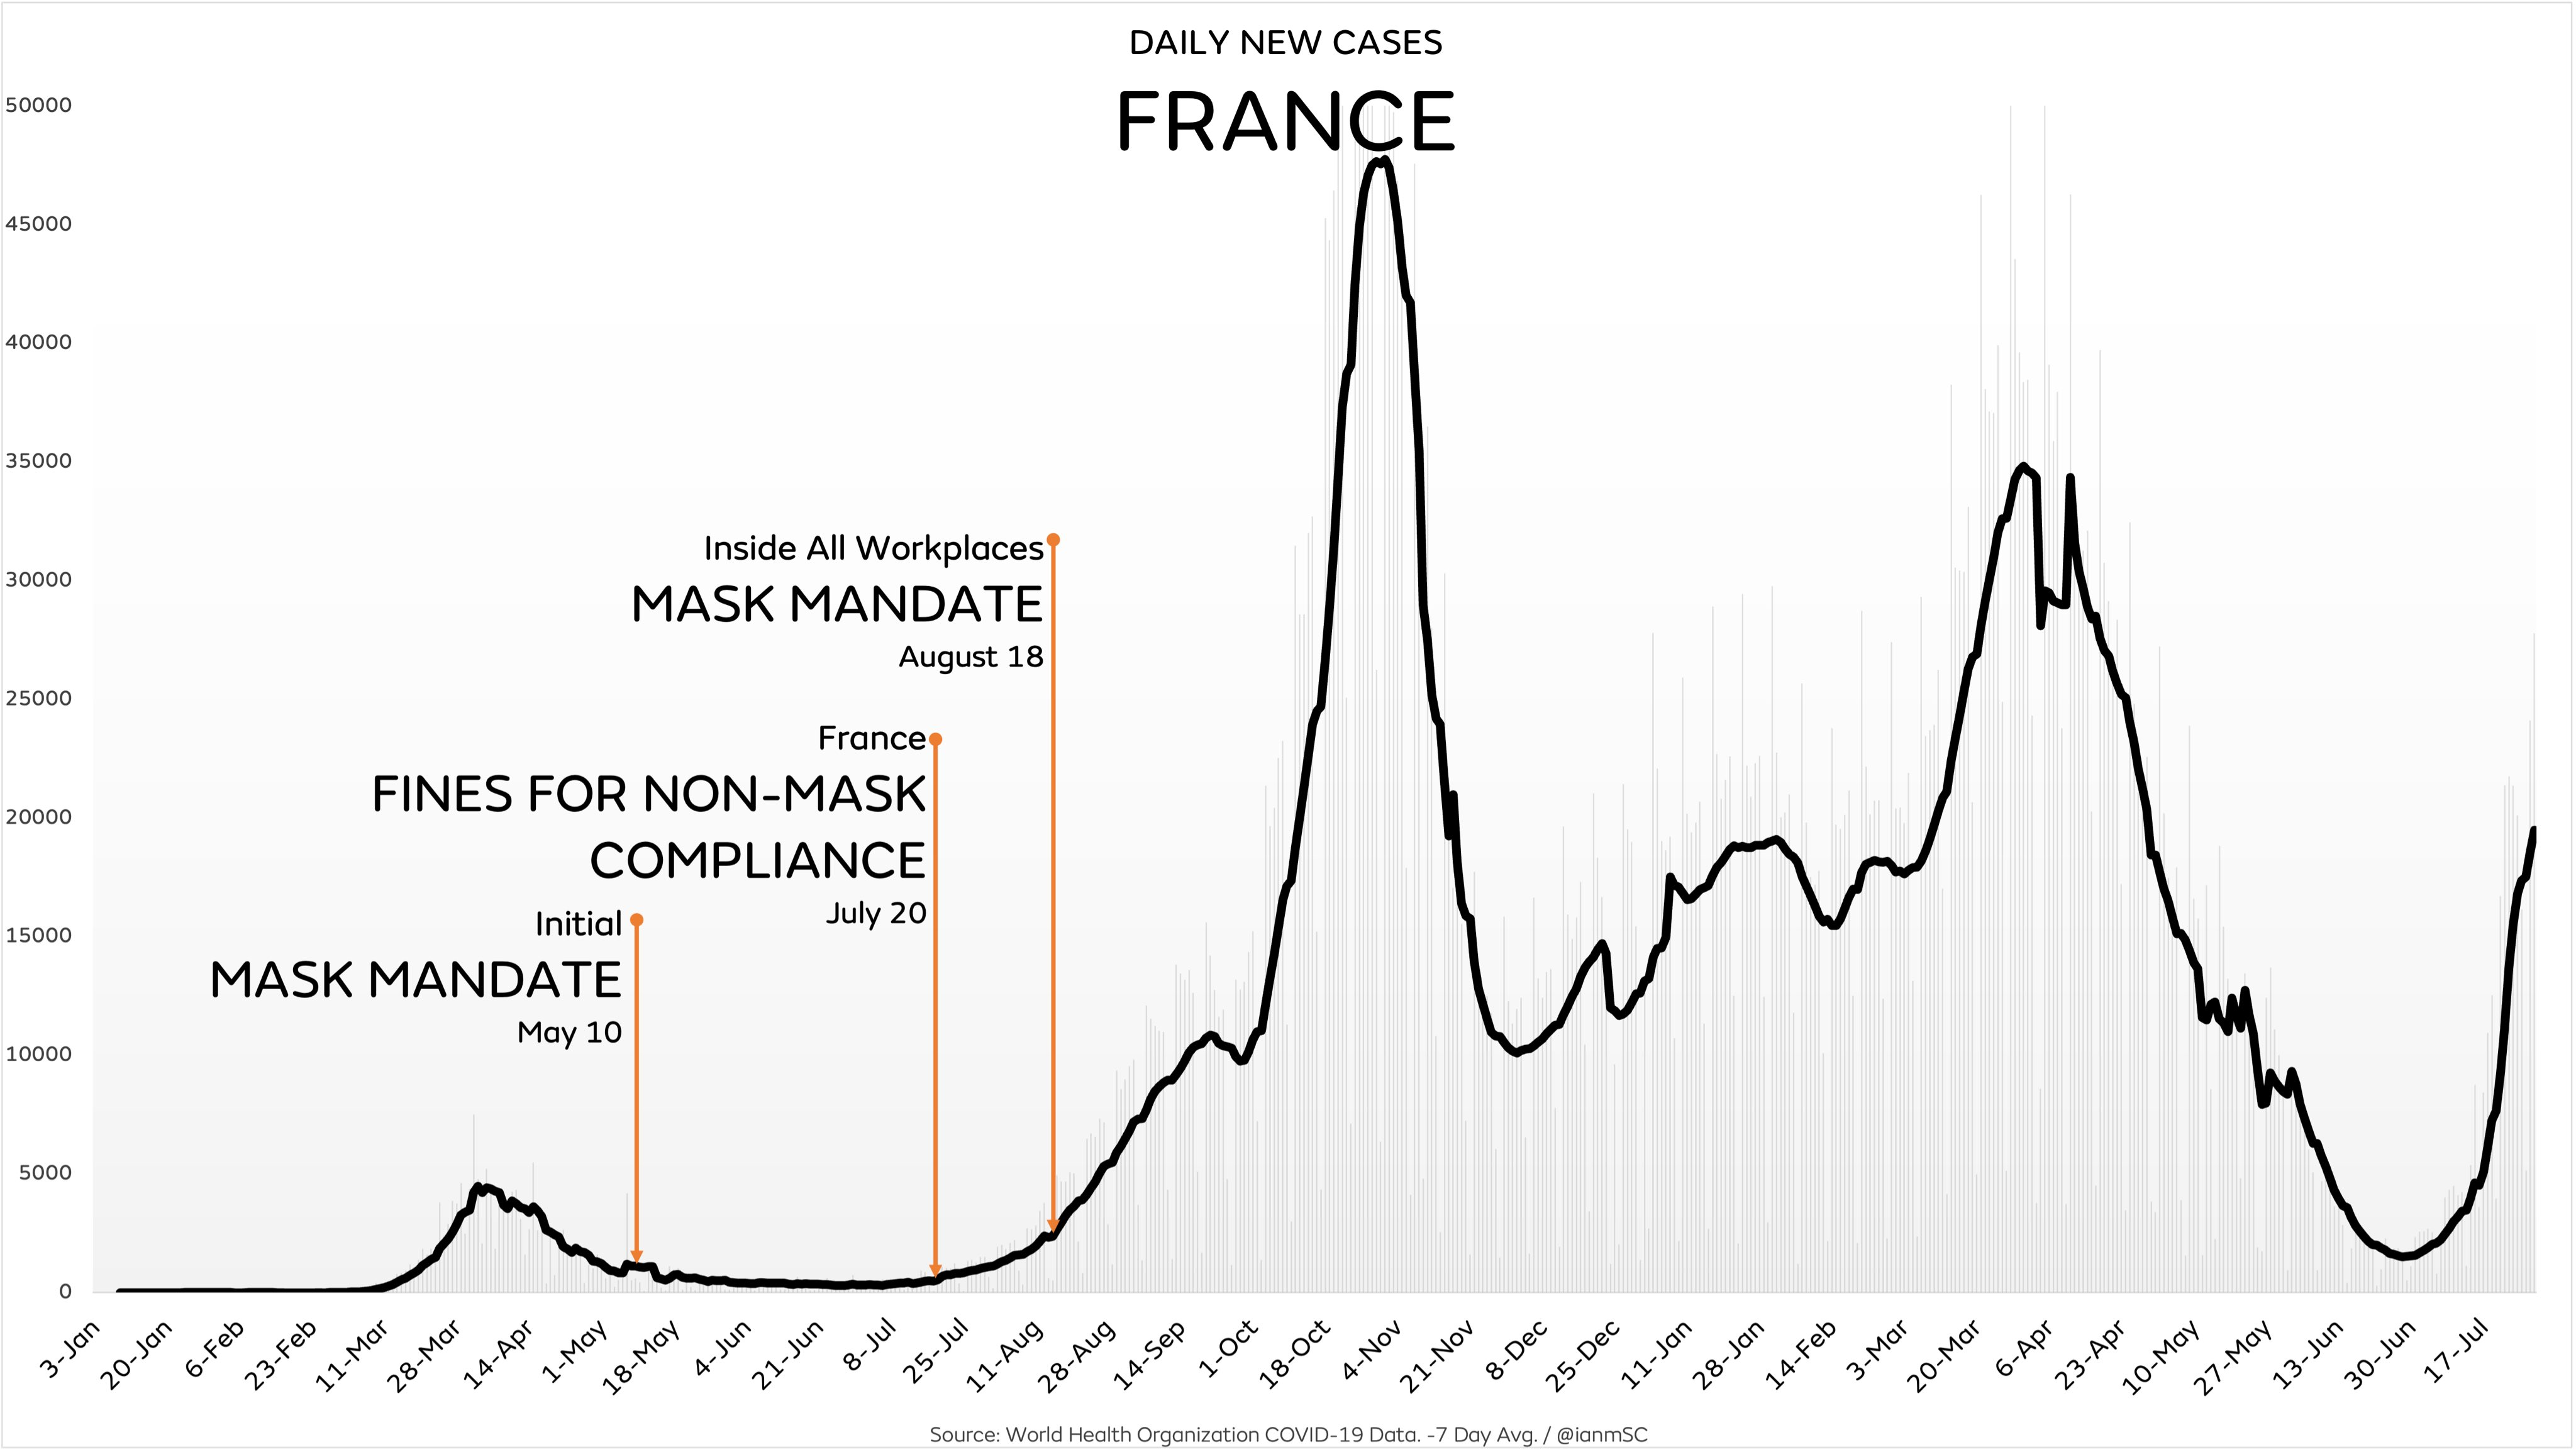 Are Face Masks Effective? The Evidence. France